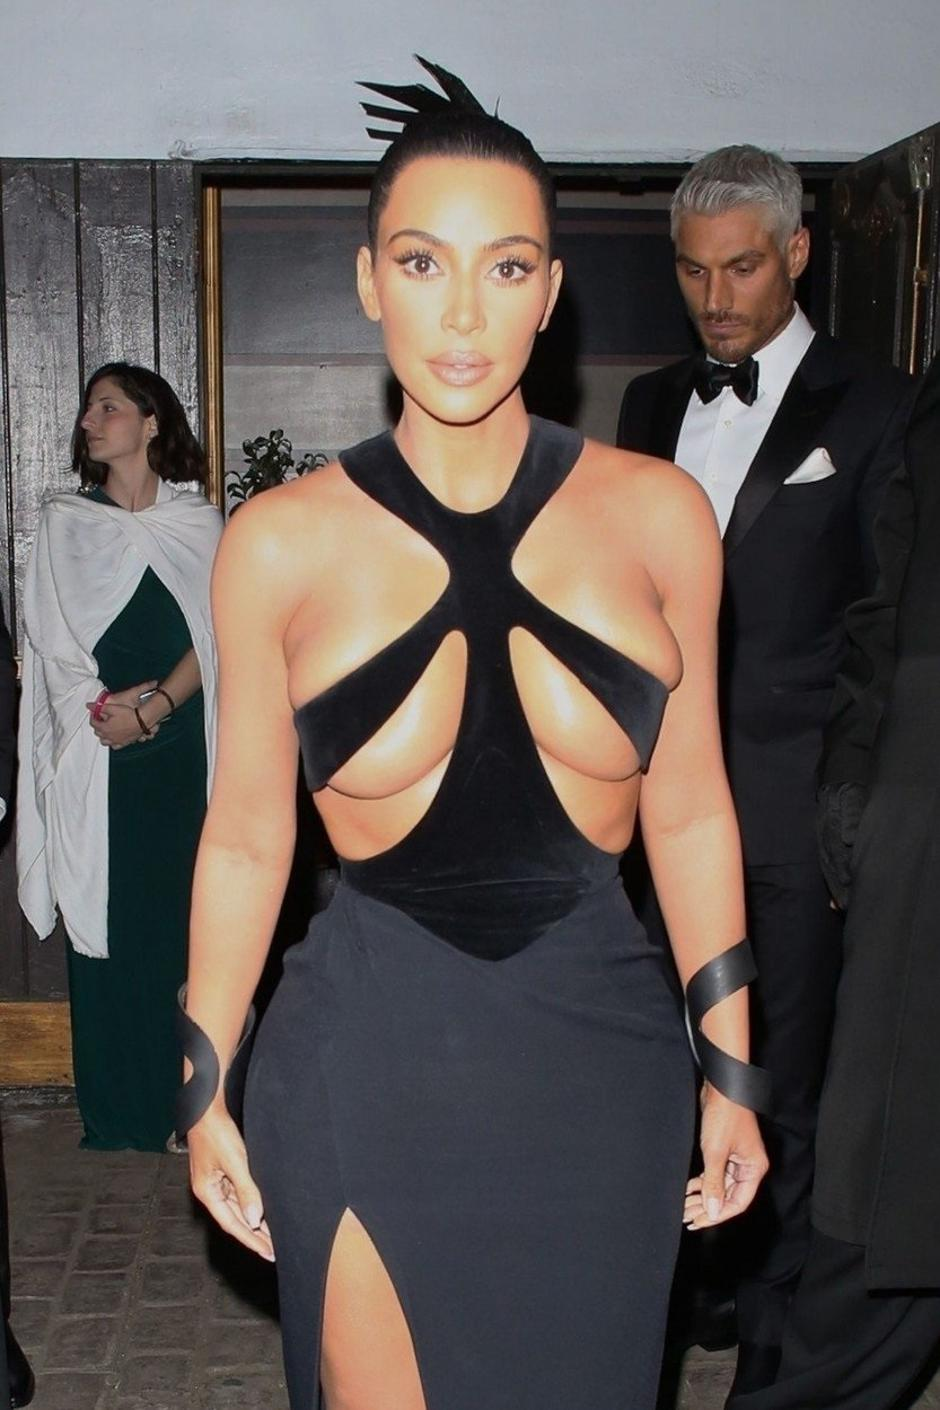 Kim Kardashian leaves little to the imagination in sexy strapped gown during outing in Los Angeles | Autor: Profimedia